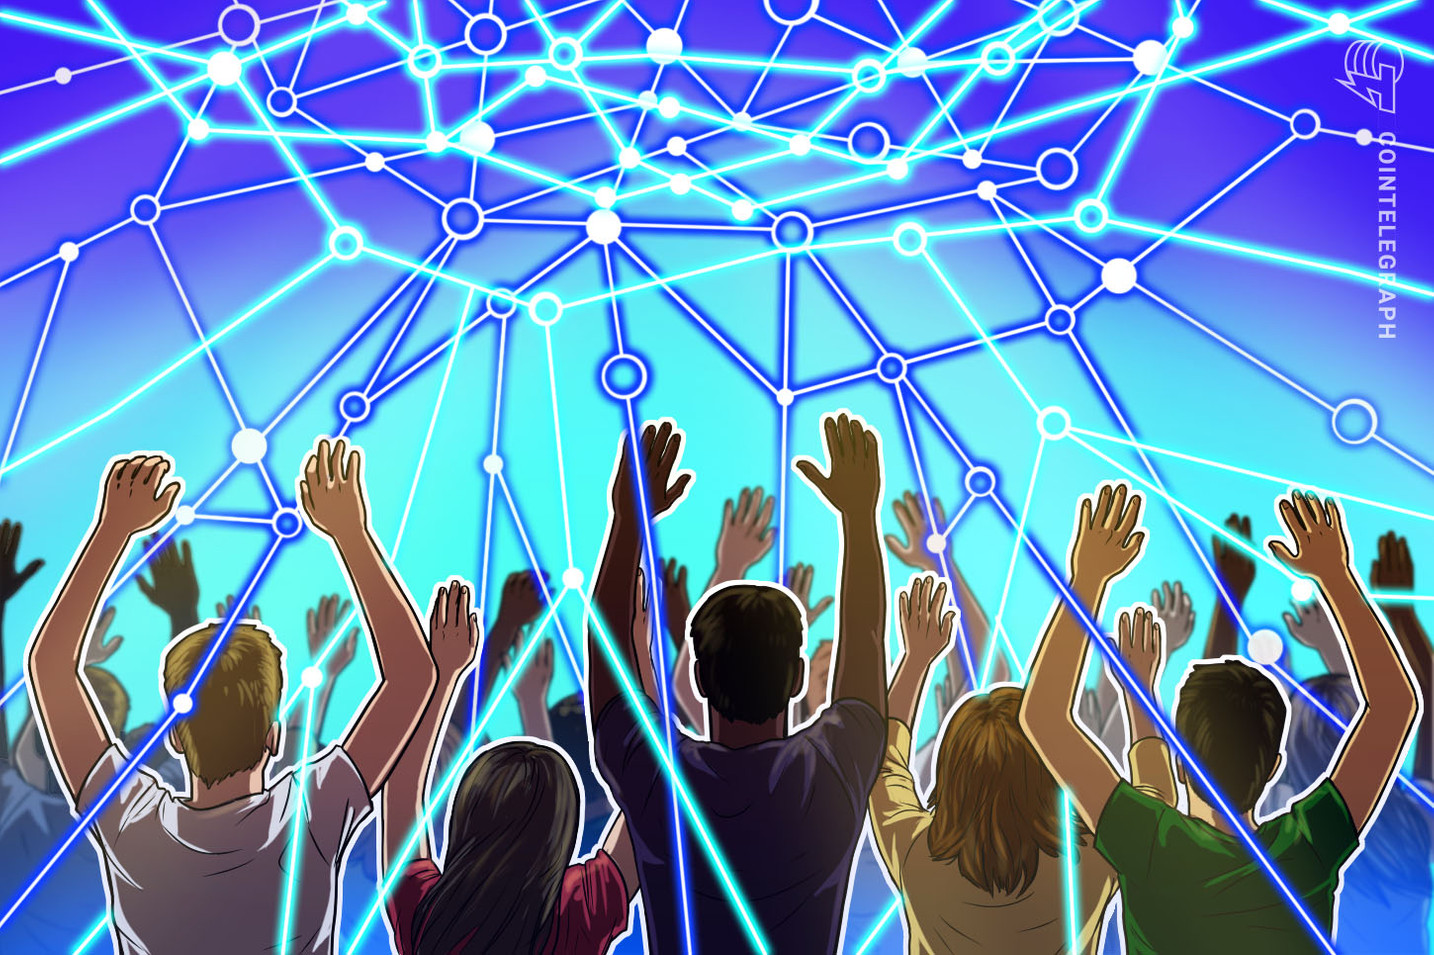 Hunan's Government Has Chosen a Company to Build New Blockchain Infrastructure for the Region